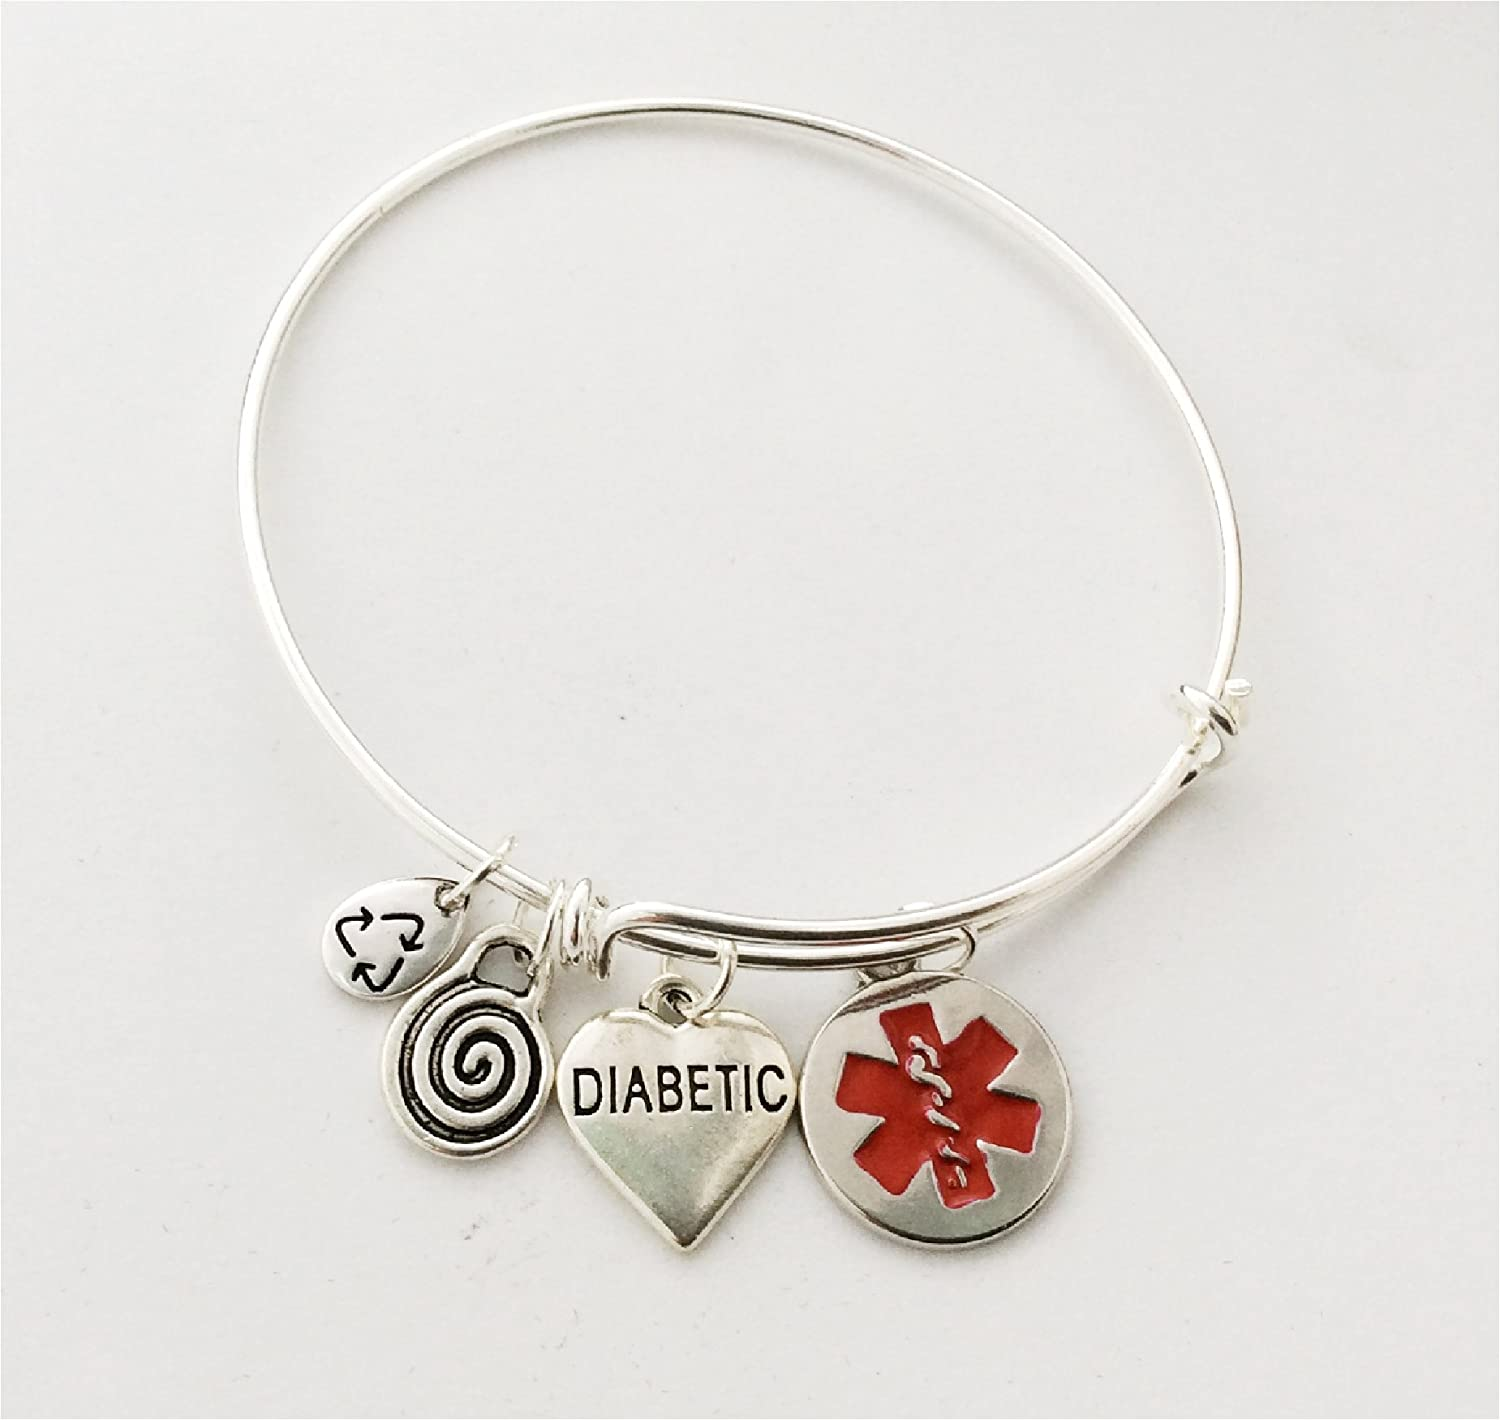 fs mbr medicengraved bracelet product com cs cardiac